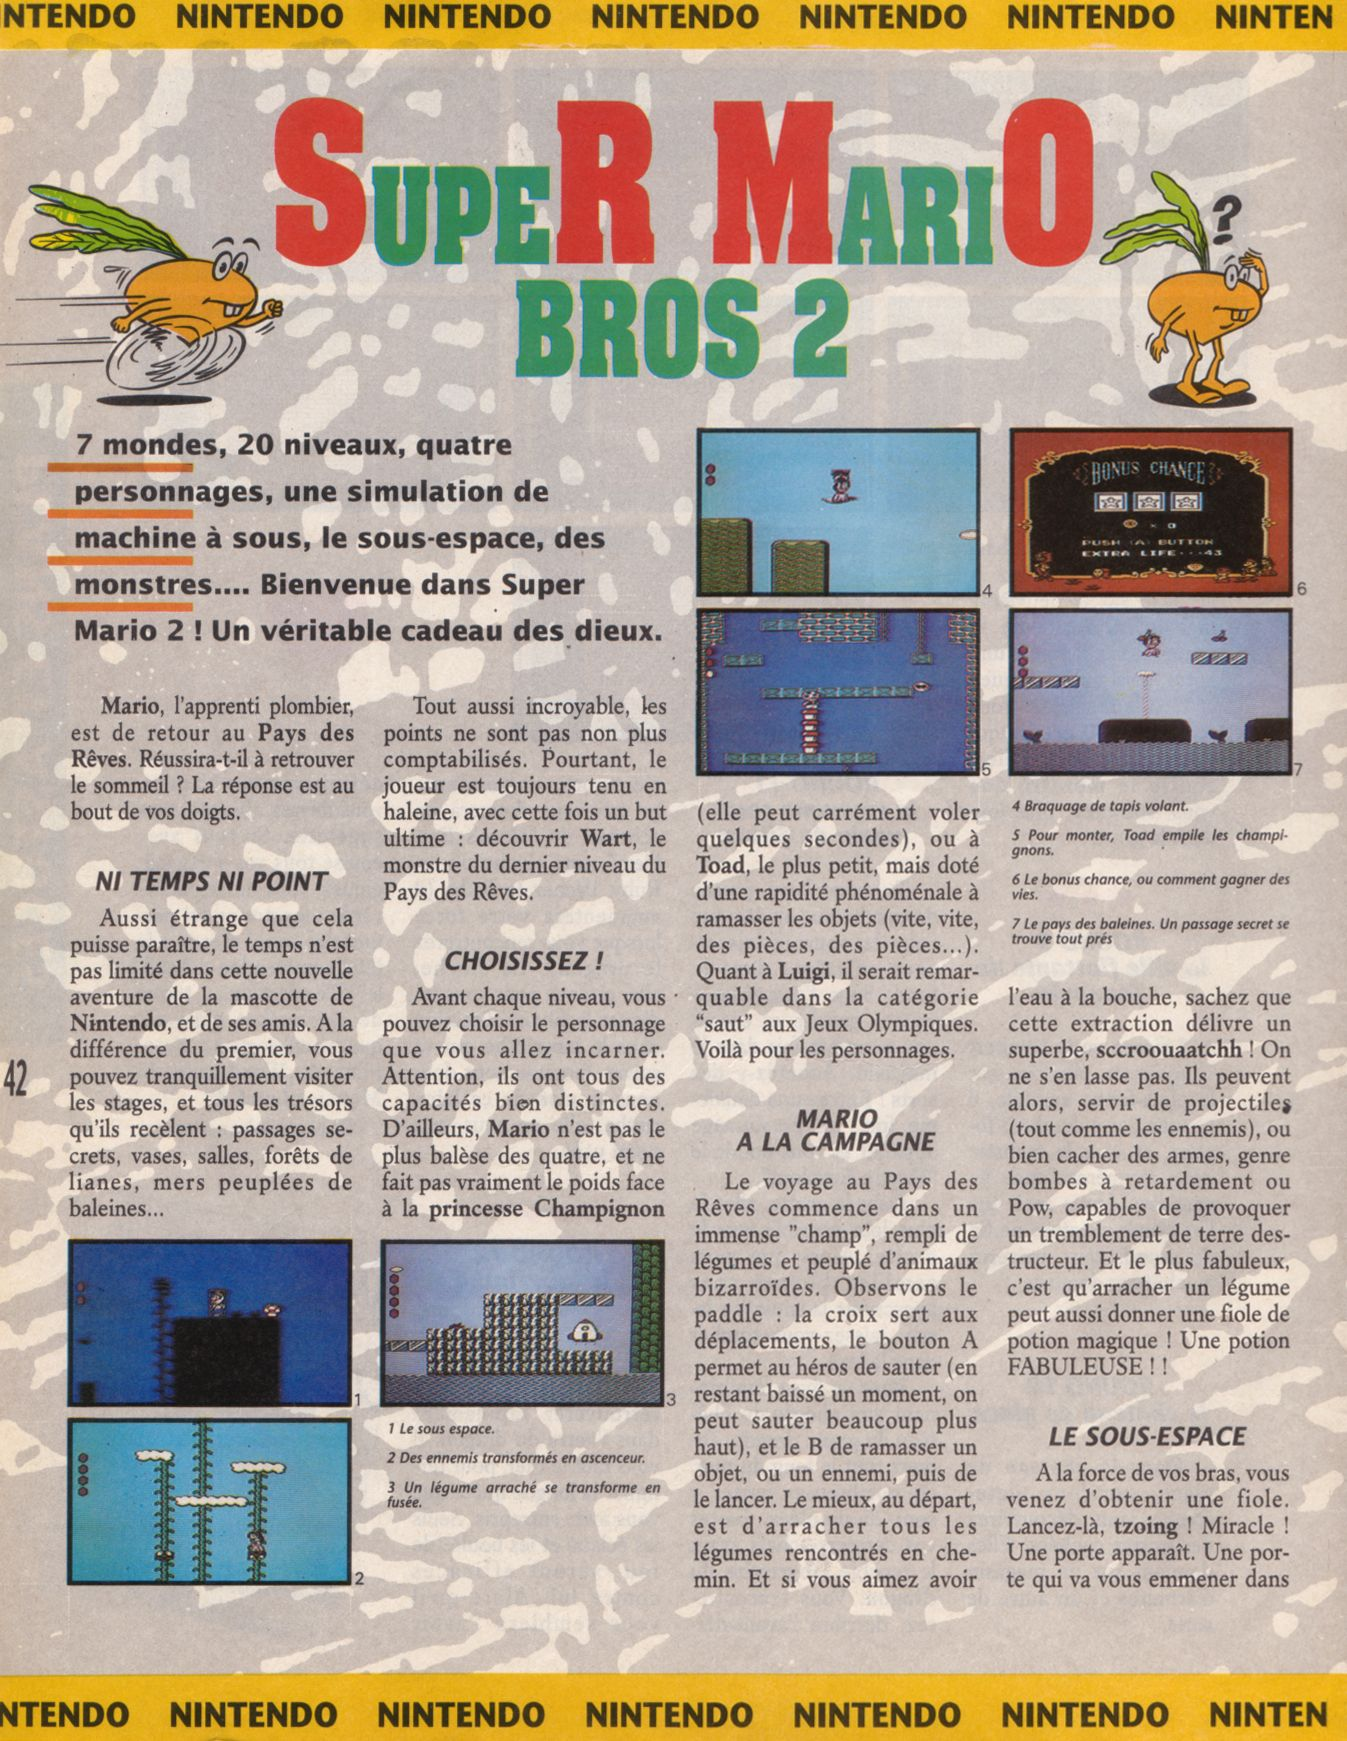 [JEUX]   SUPER MARIO BROS 2 (NES) 1988. Player%20One%20001%20-%20Page%20042%20(1990-09)